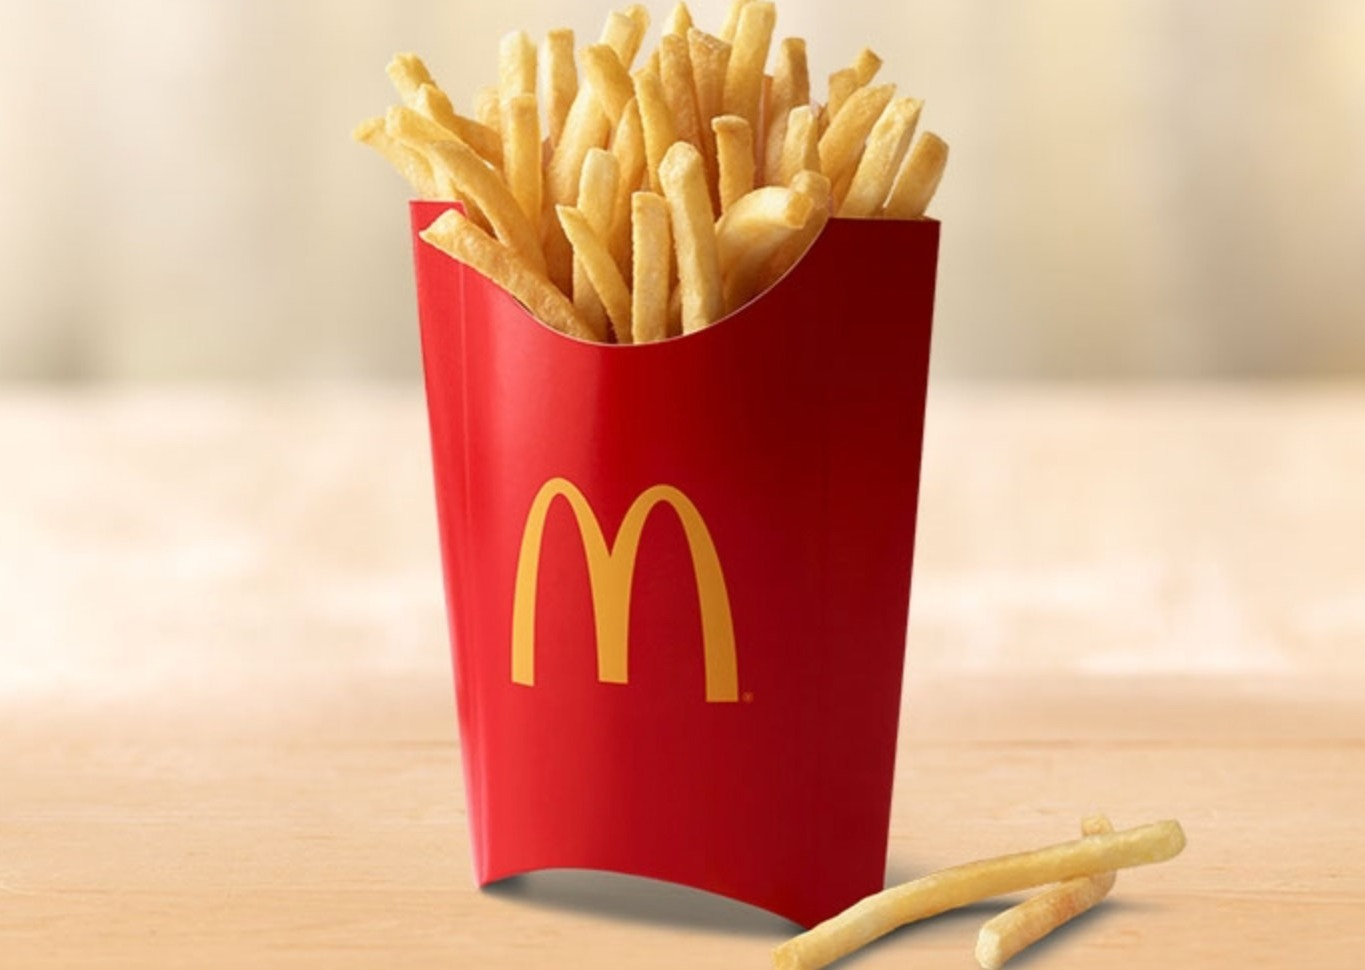 TikTok Is Astounded By This Simple McDonald's French Fry Hack